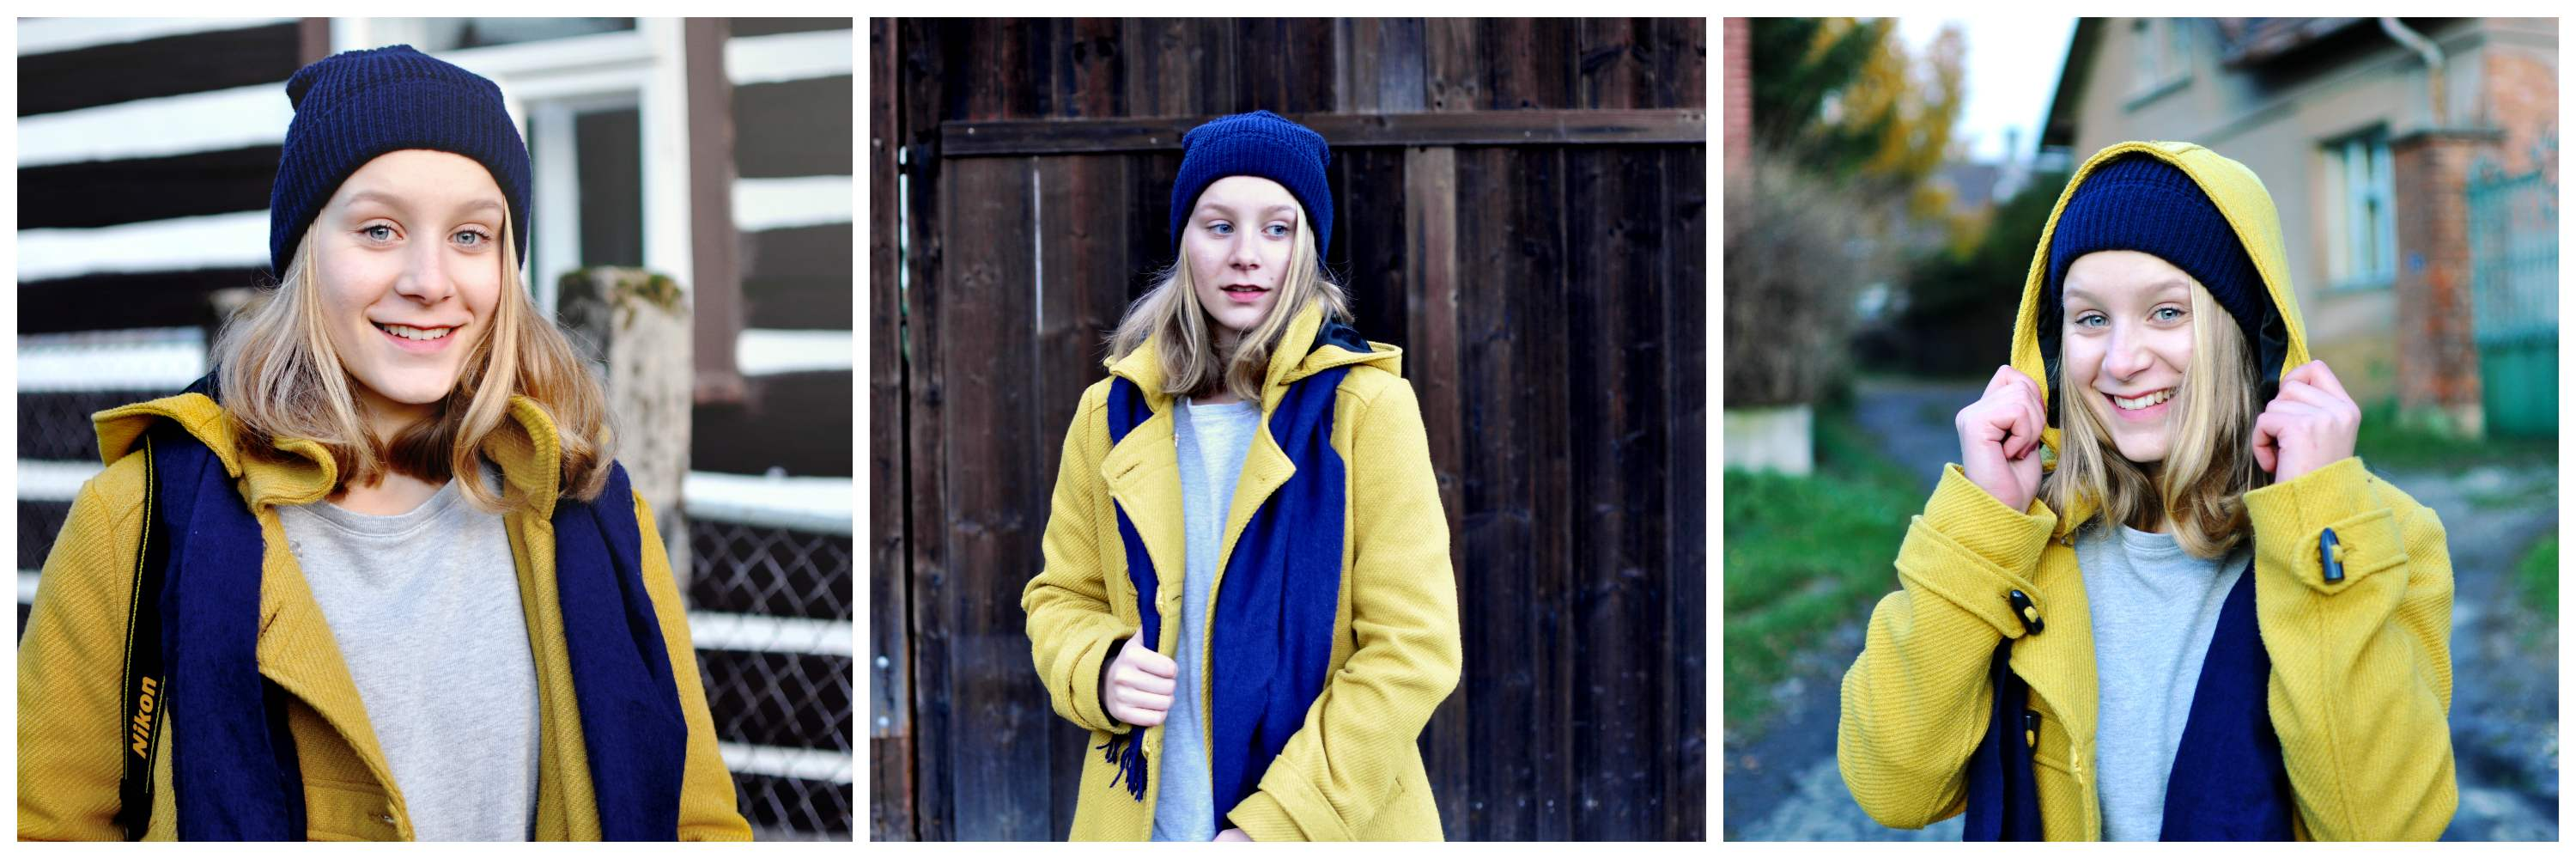 Portraits of a blonde girl in the yellow coat